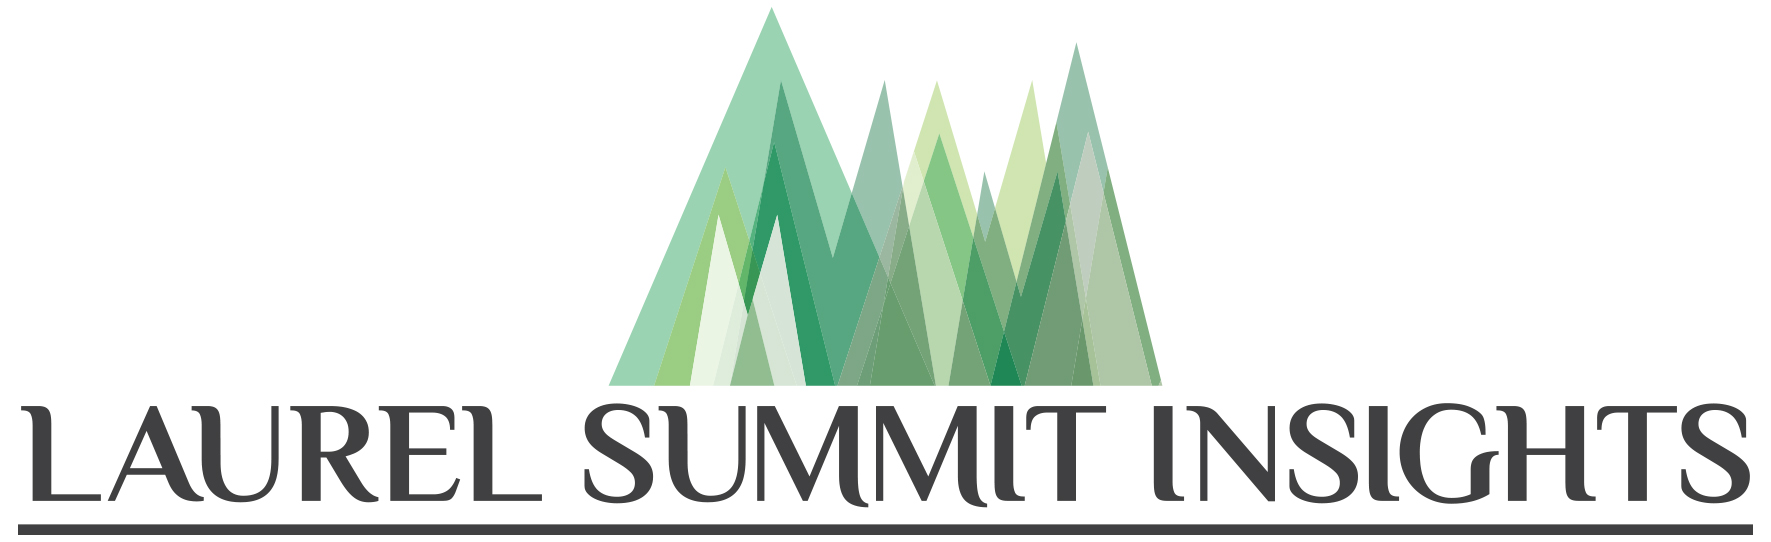 Laurel Summit Insights